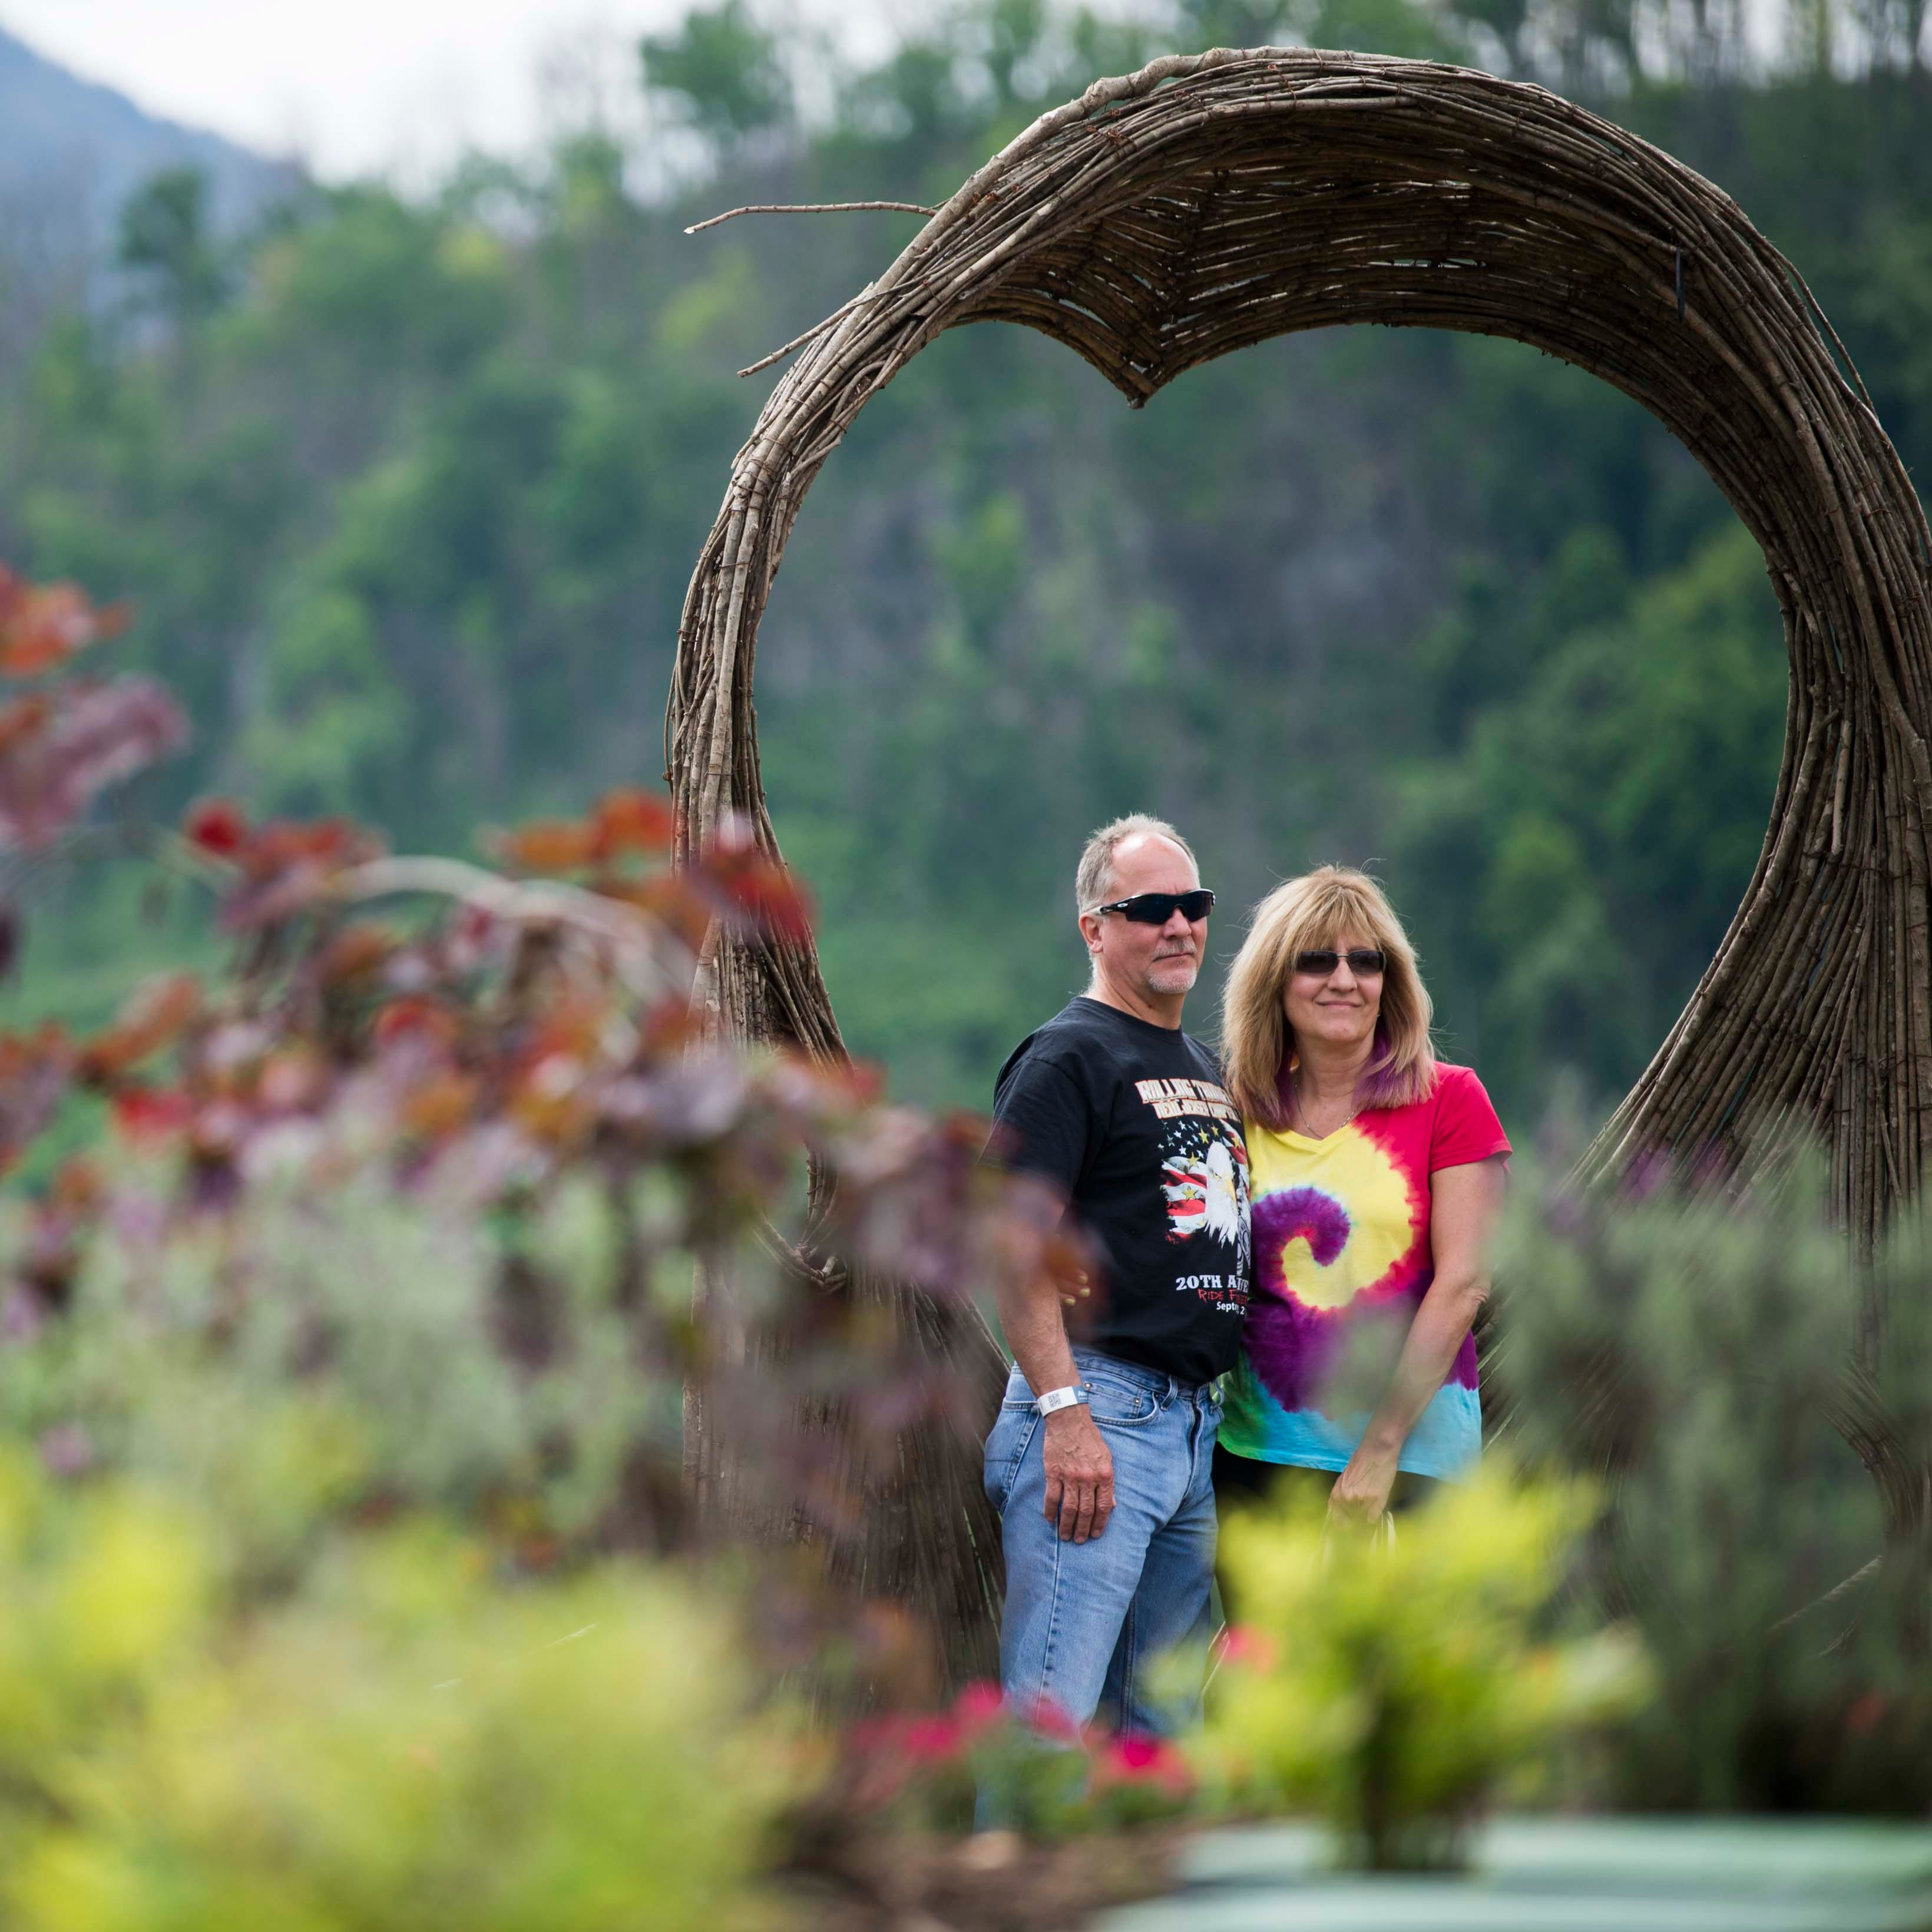 Take a tour of mountain top attraction Anakeesta's new additions in Gatlinburg